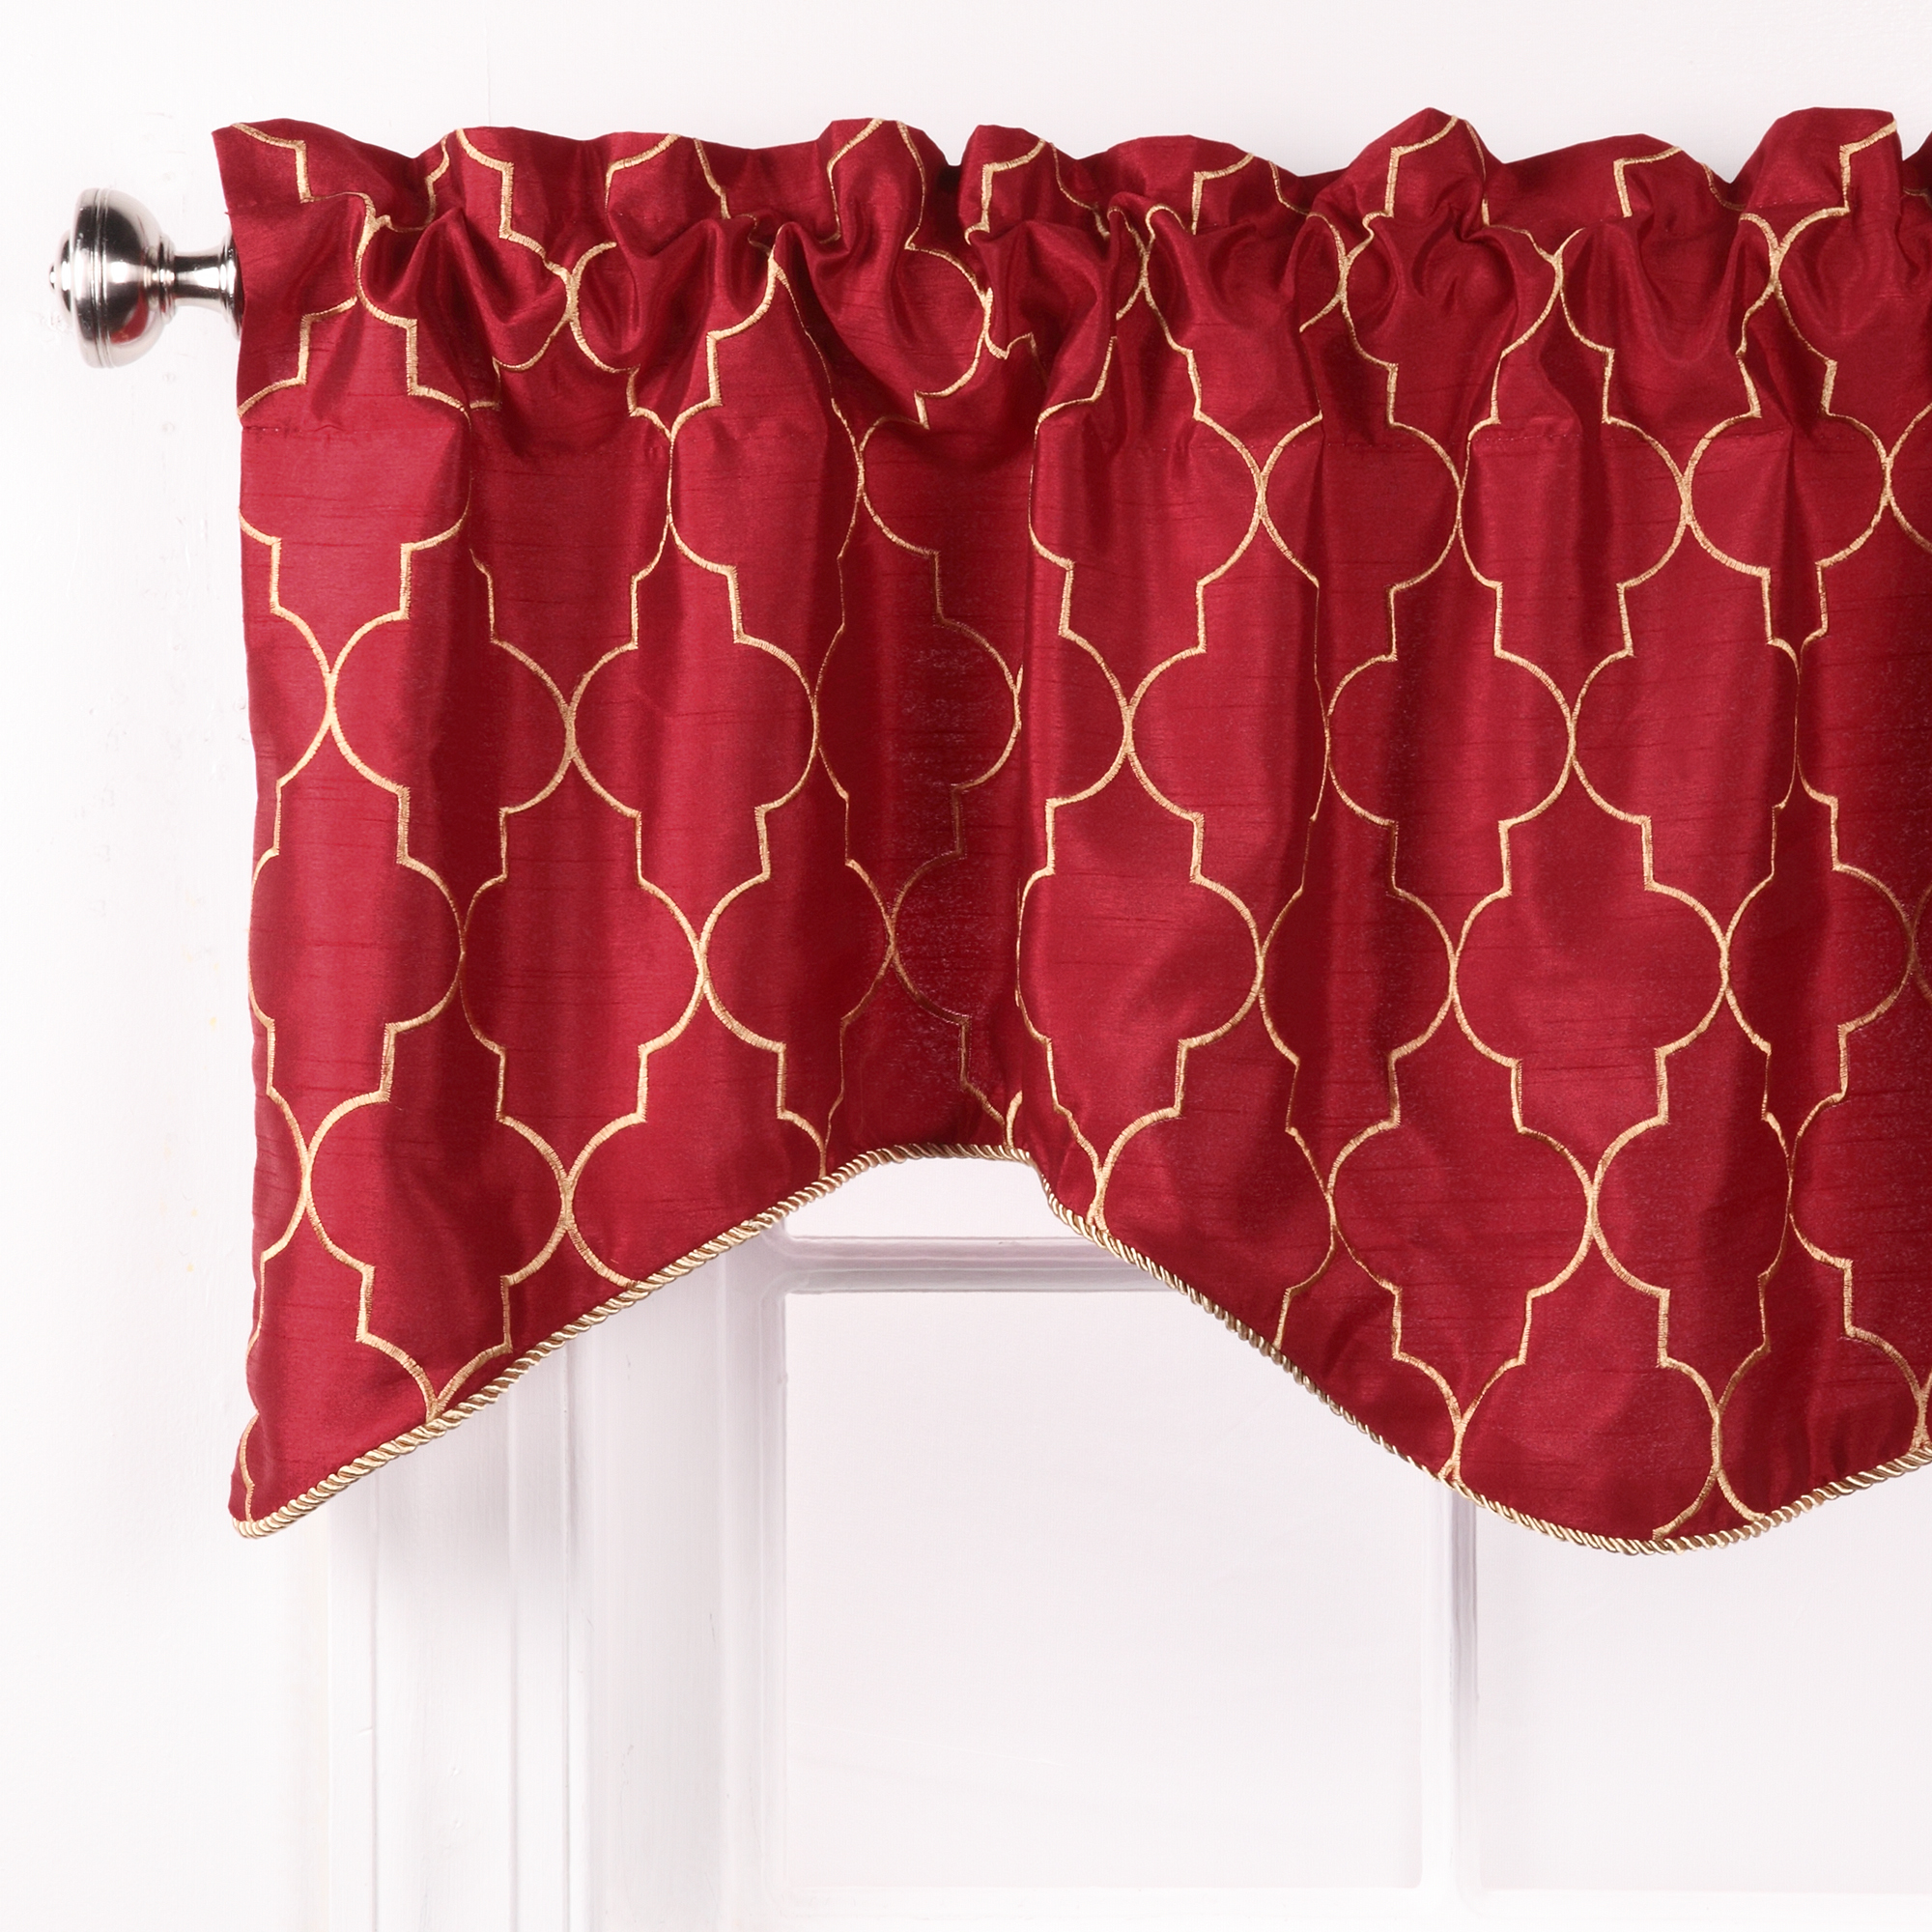 treatment an ball valance valances the in fabric these a and pin contrasting swag kingston for custom lined coordinating top fringe trimmed are pole mounted over